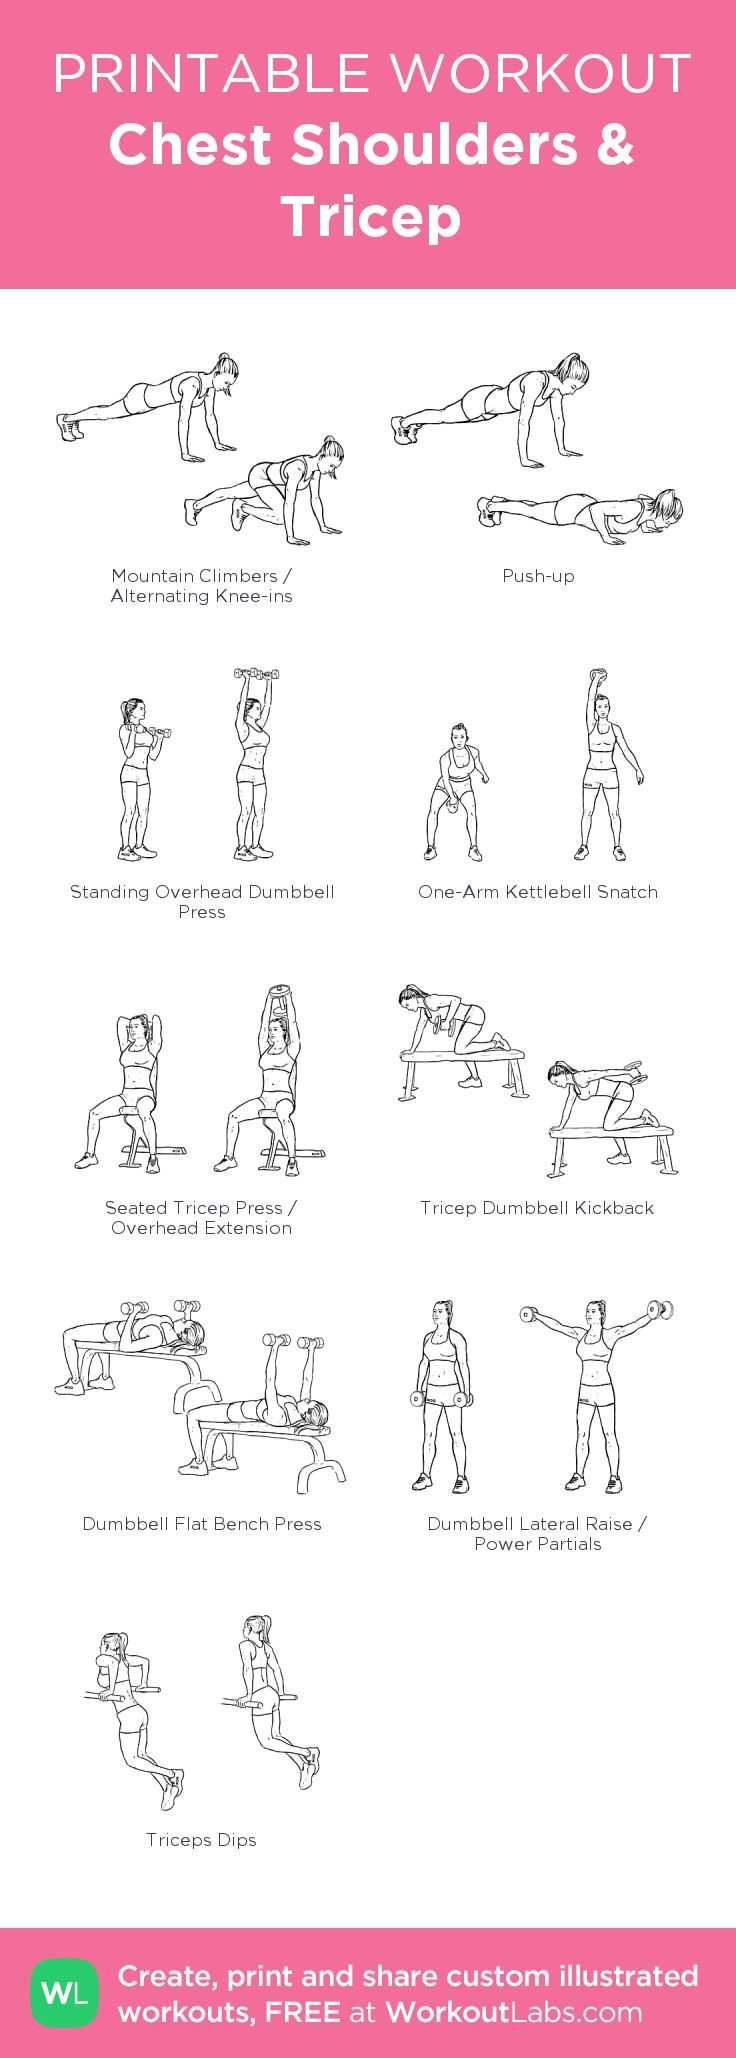 9 best workout plans images on Pinterest | Workouts, Exercise ...